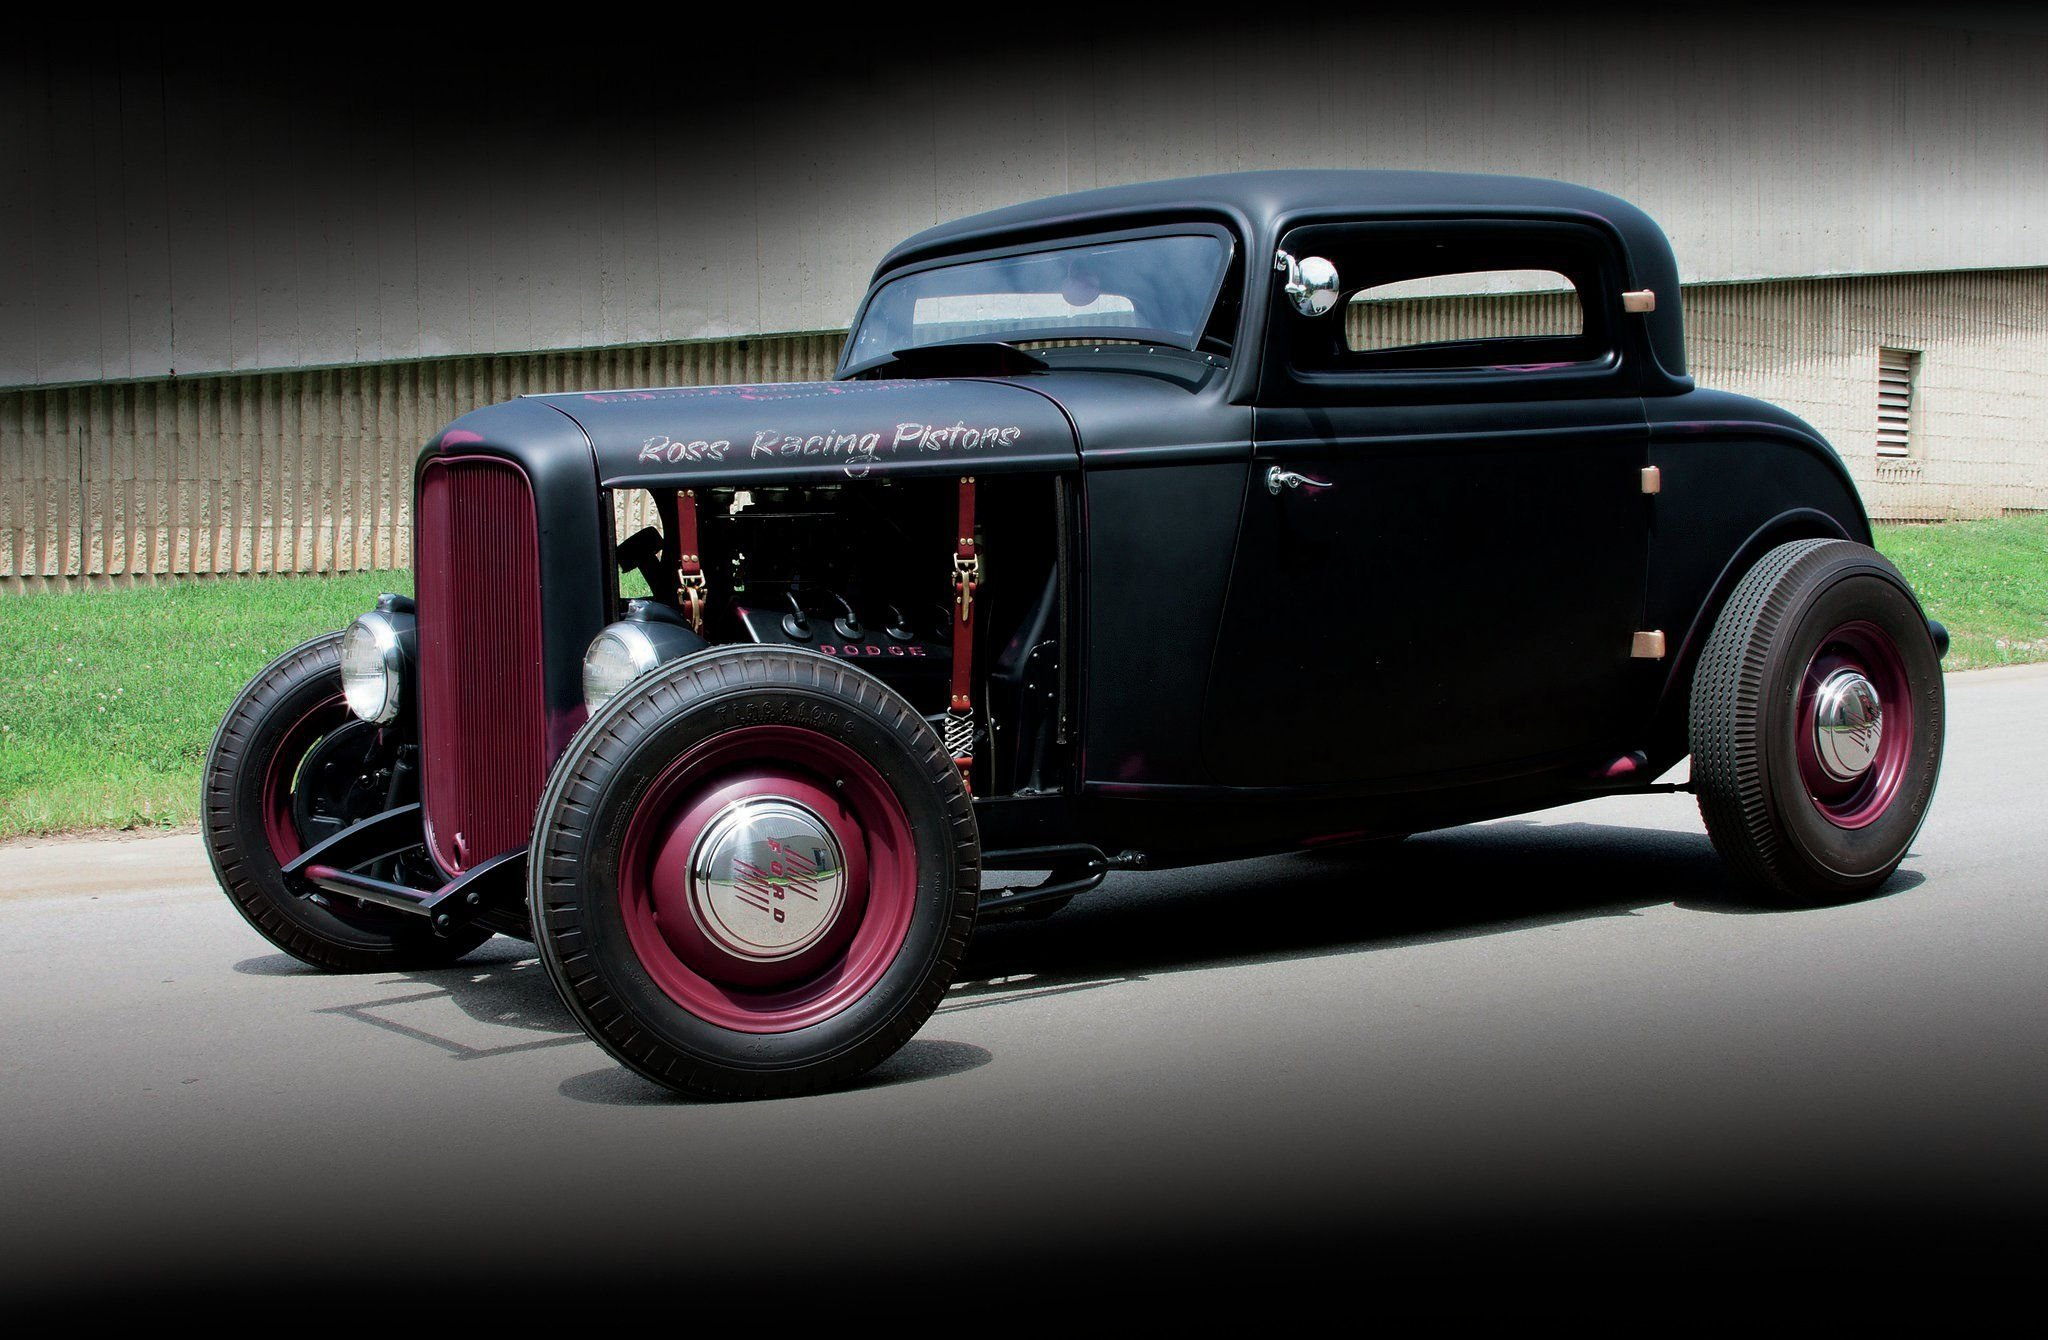 1932 Ford Coupe-01 wallpaper